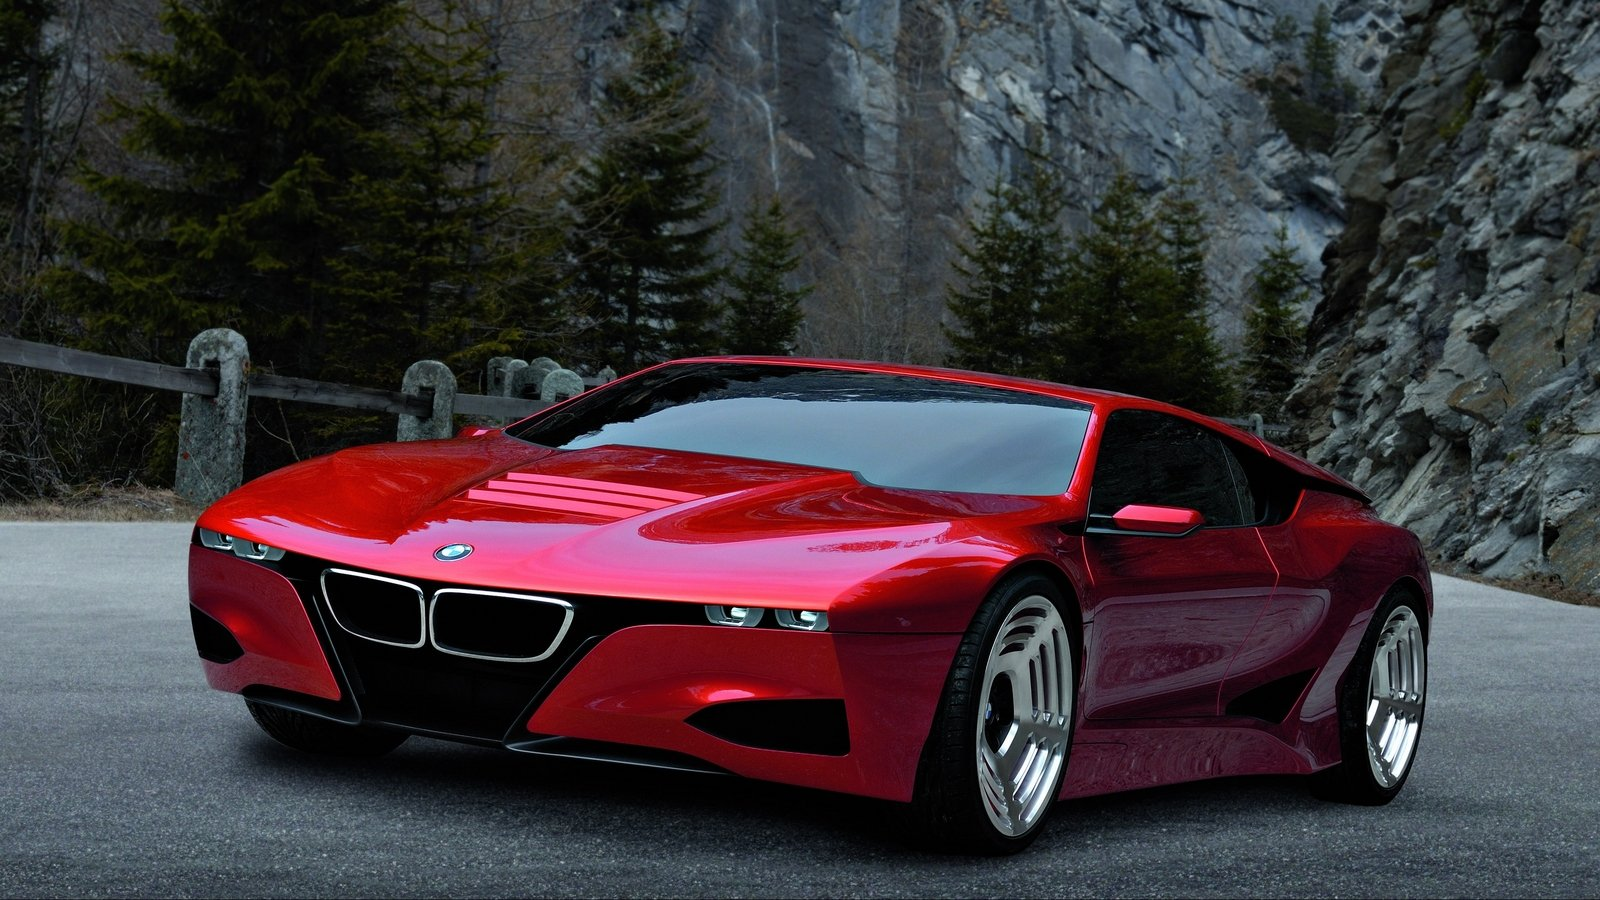 2008 bmw m1 hommage picture 631897 car review top speed. Black Bedroom Furniture Sets. Home Design Ideas